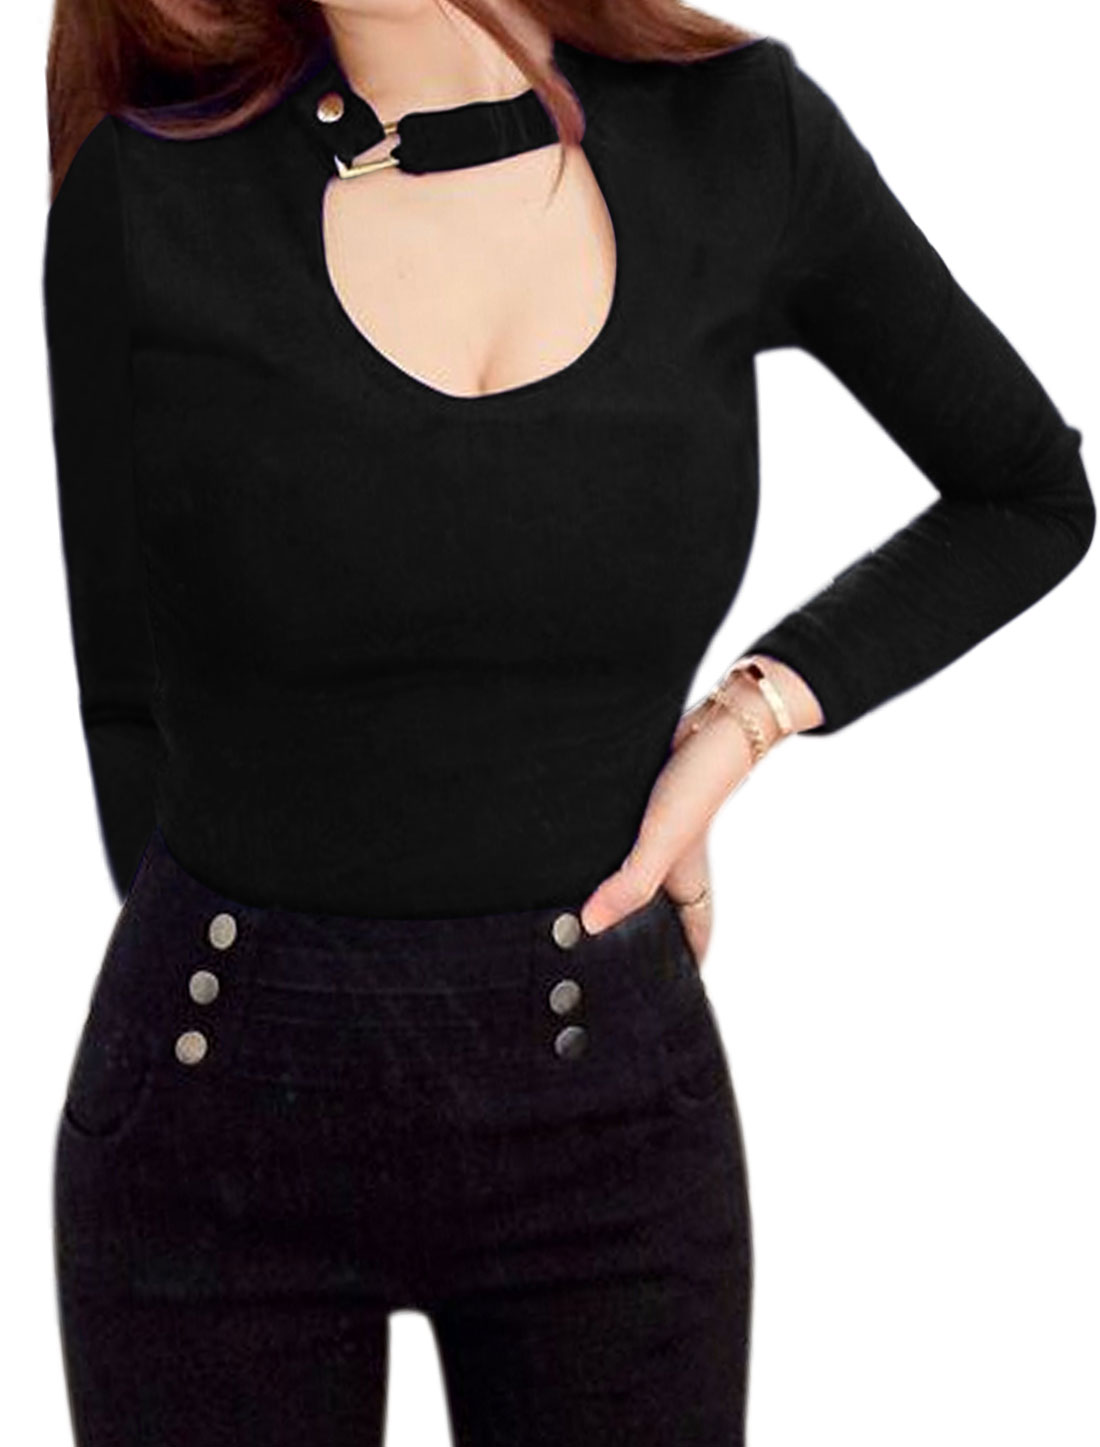 Women Buckled Collar Long Sleeves Slim Fit Cut Out Top Black XS